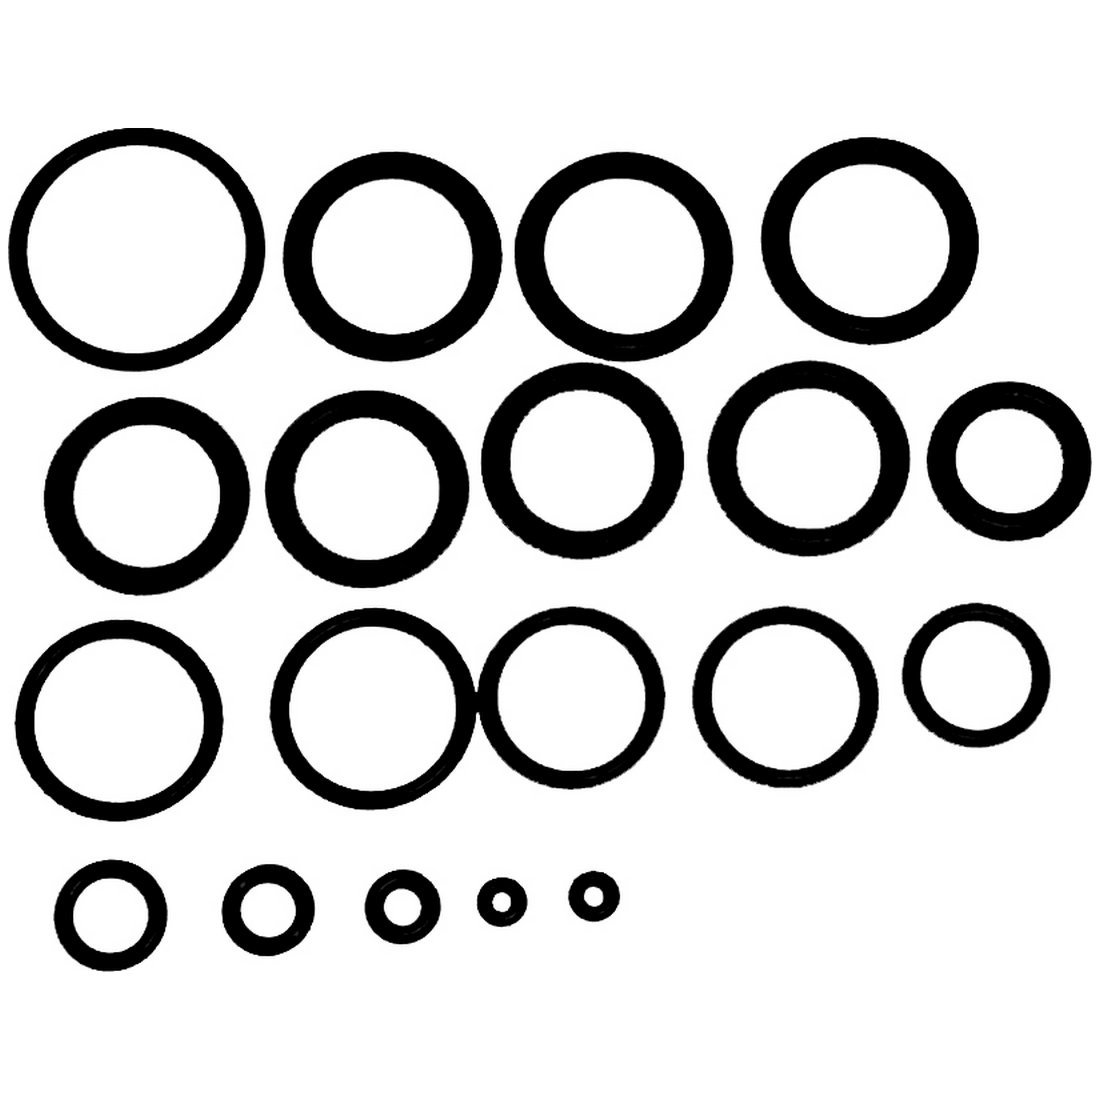 RPM Tech Level Autococker Spares Kit - Most Commonly Needed OEM Orings and Other Pieces